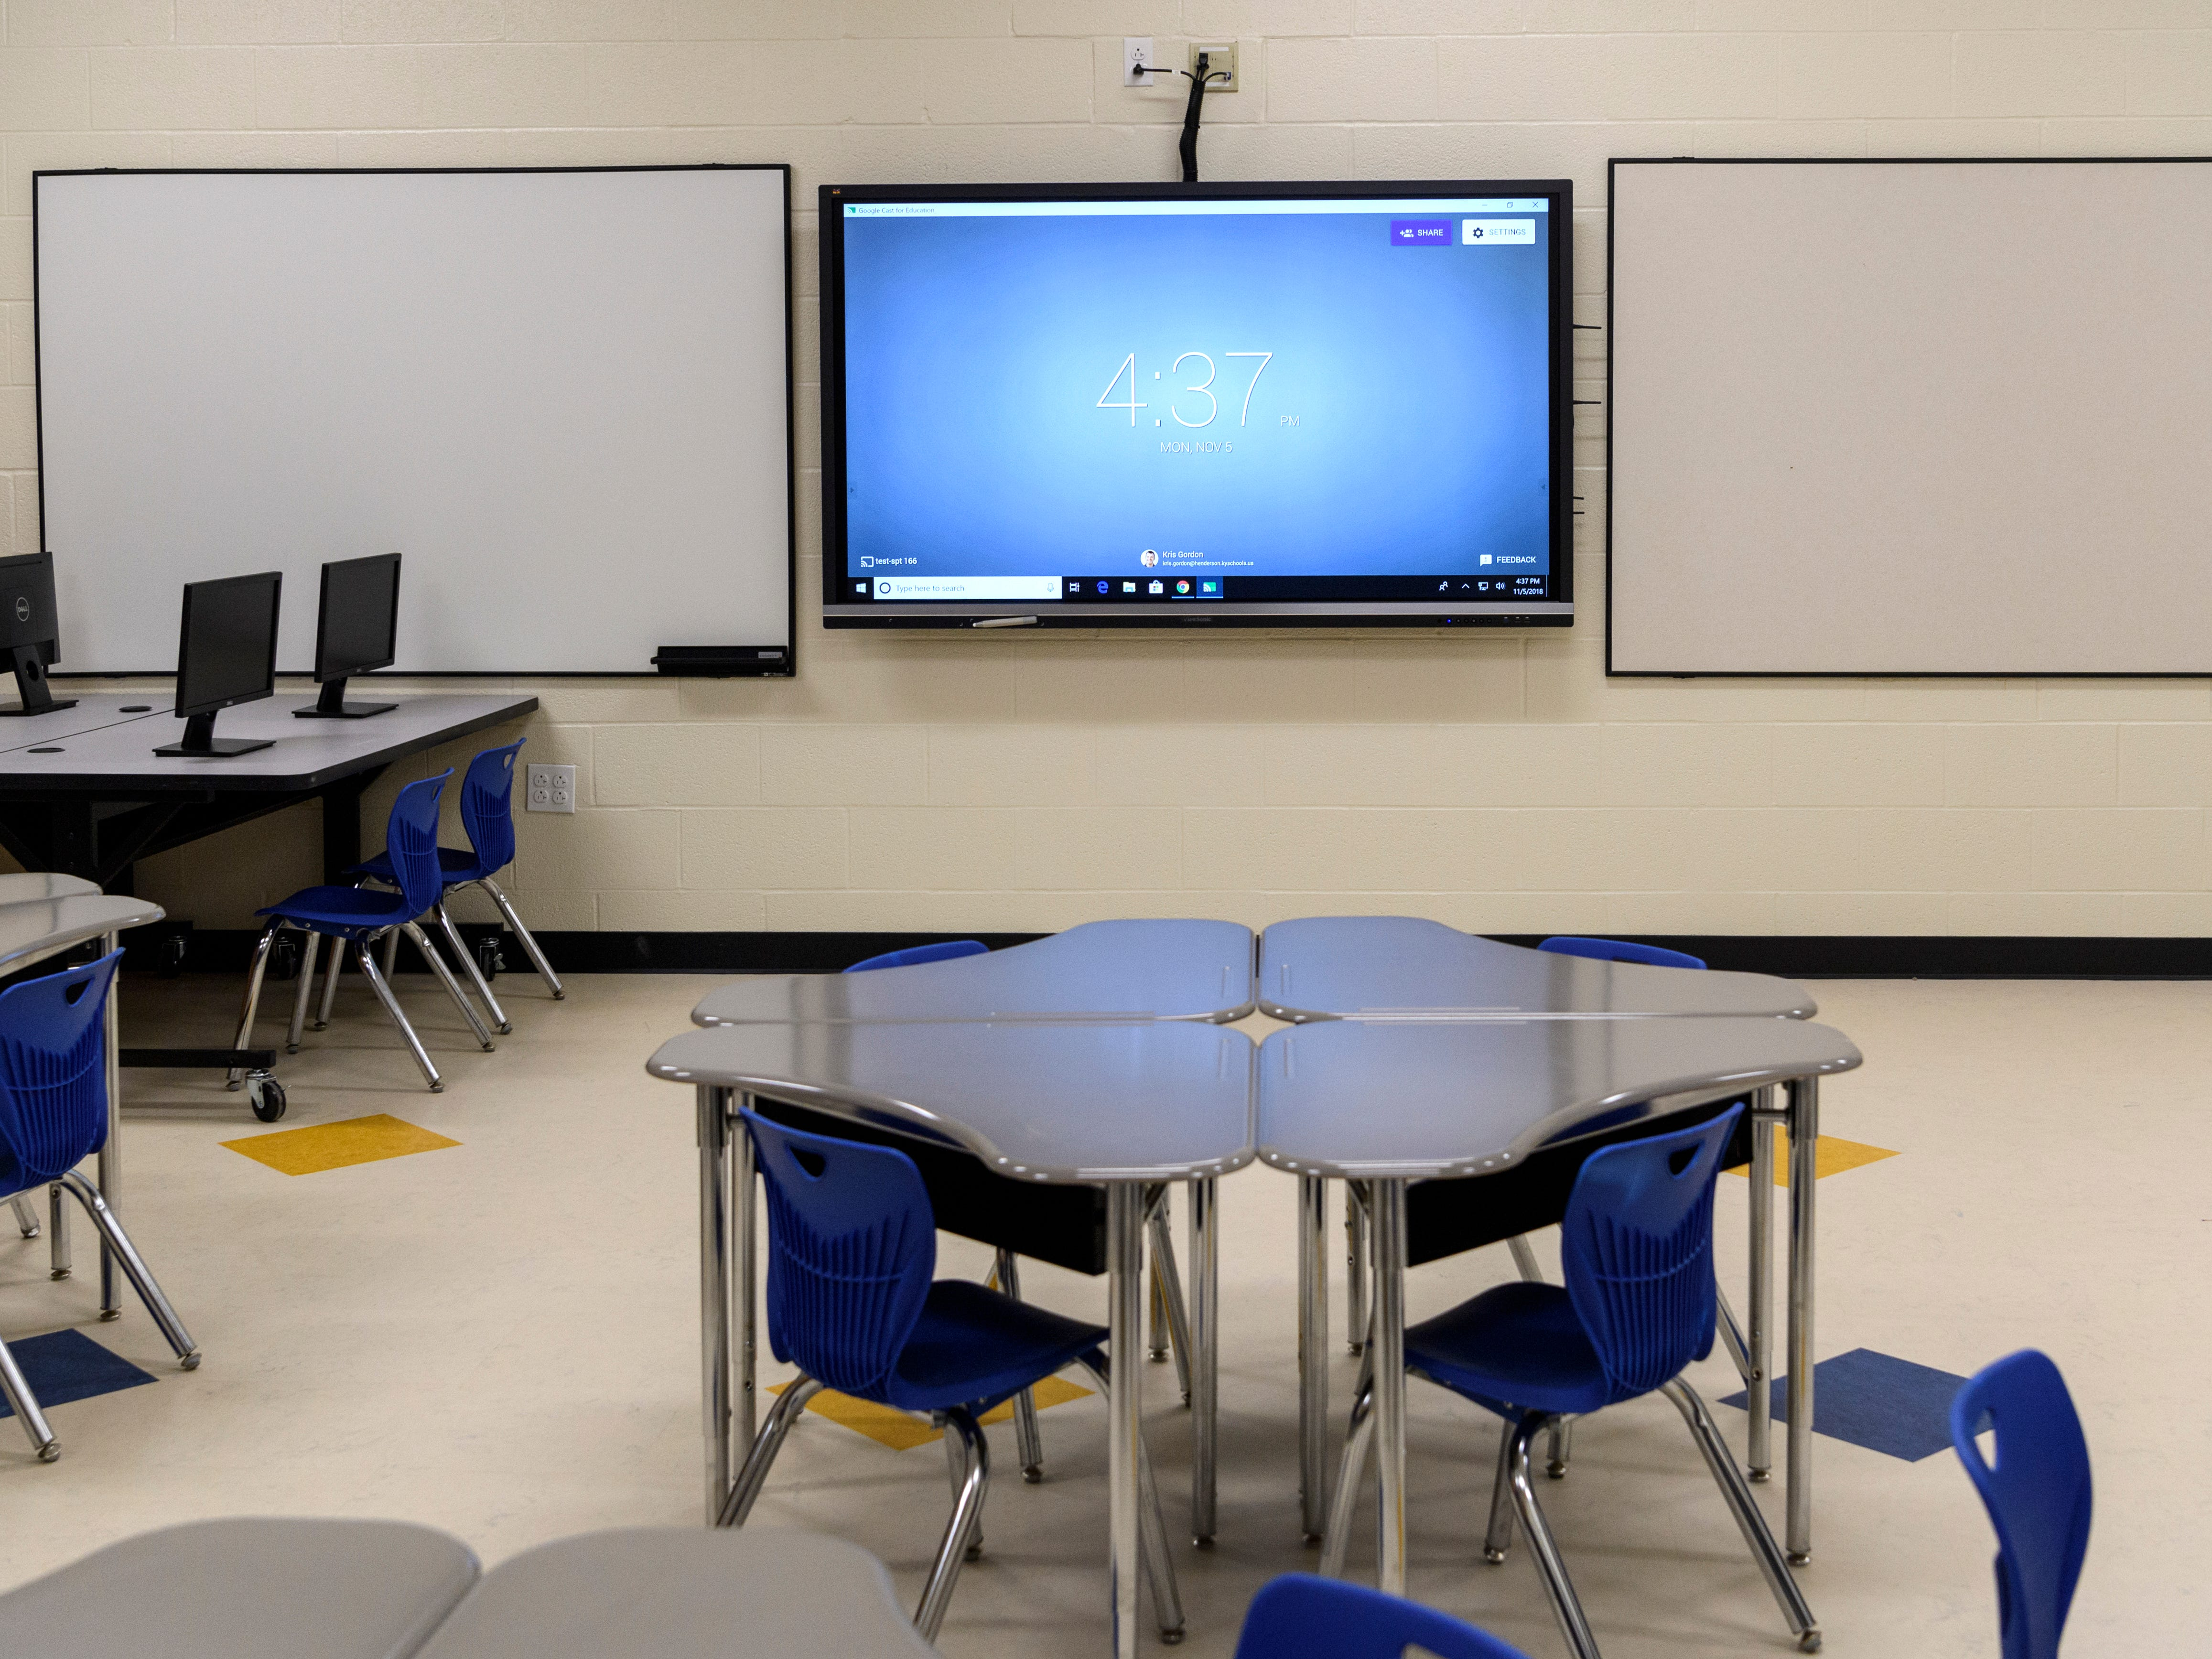 A second grade classroom inside the new Spottsville Elementary school building features state of the art technology such as an interactive viewboard, high density wireless internet and microphones to use during class. There are 30 classrooms to accommodate 700 students.